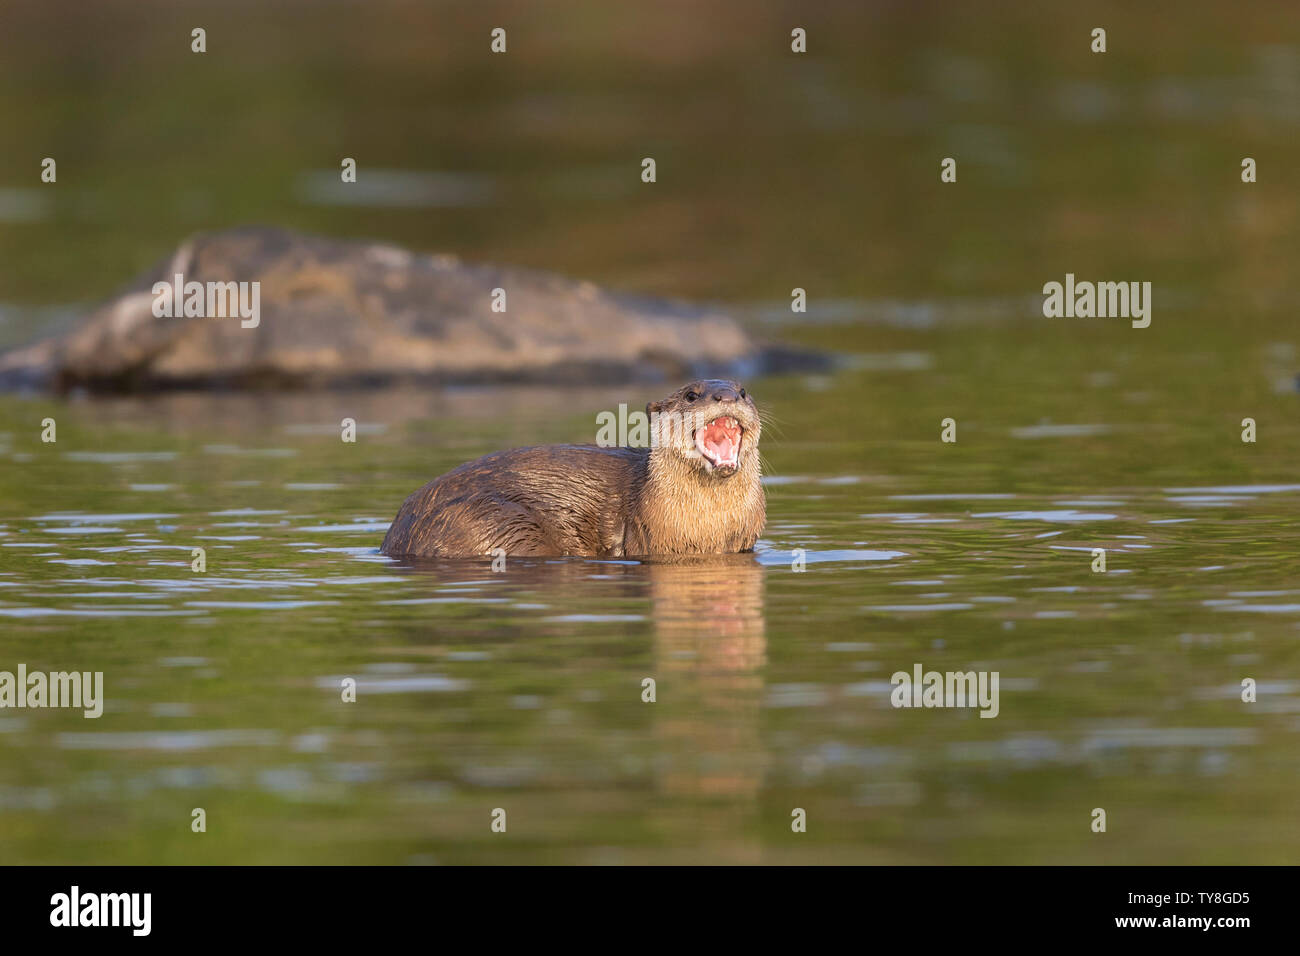 The image of Smooth-coated otter (Lutrogale perspicillata) was taken  in Chambal river, Rajasthan, India Stock Photo